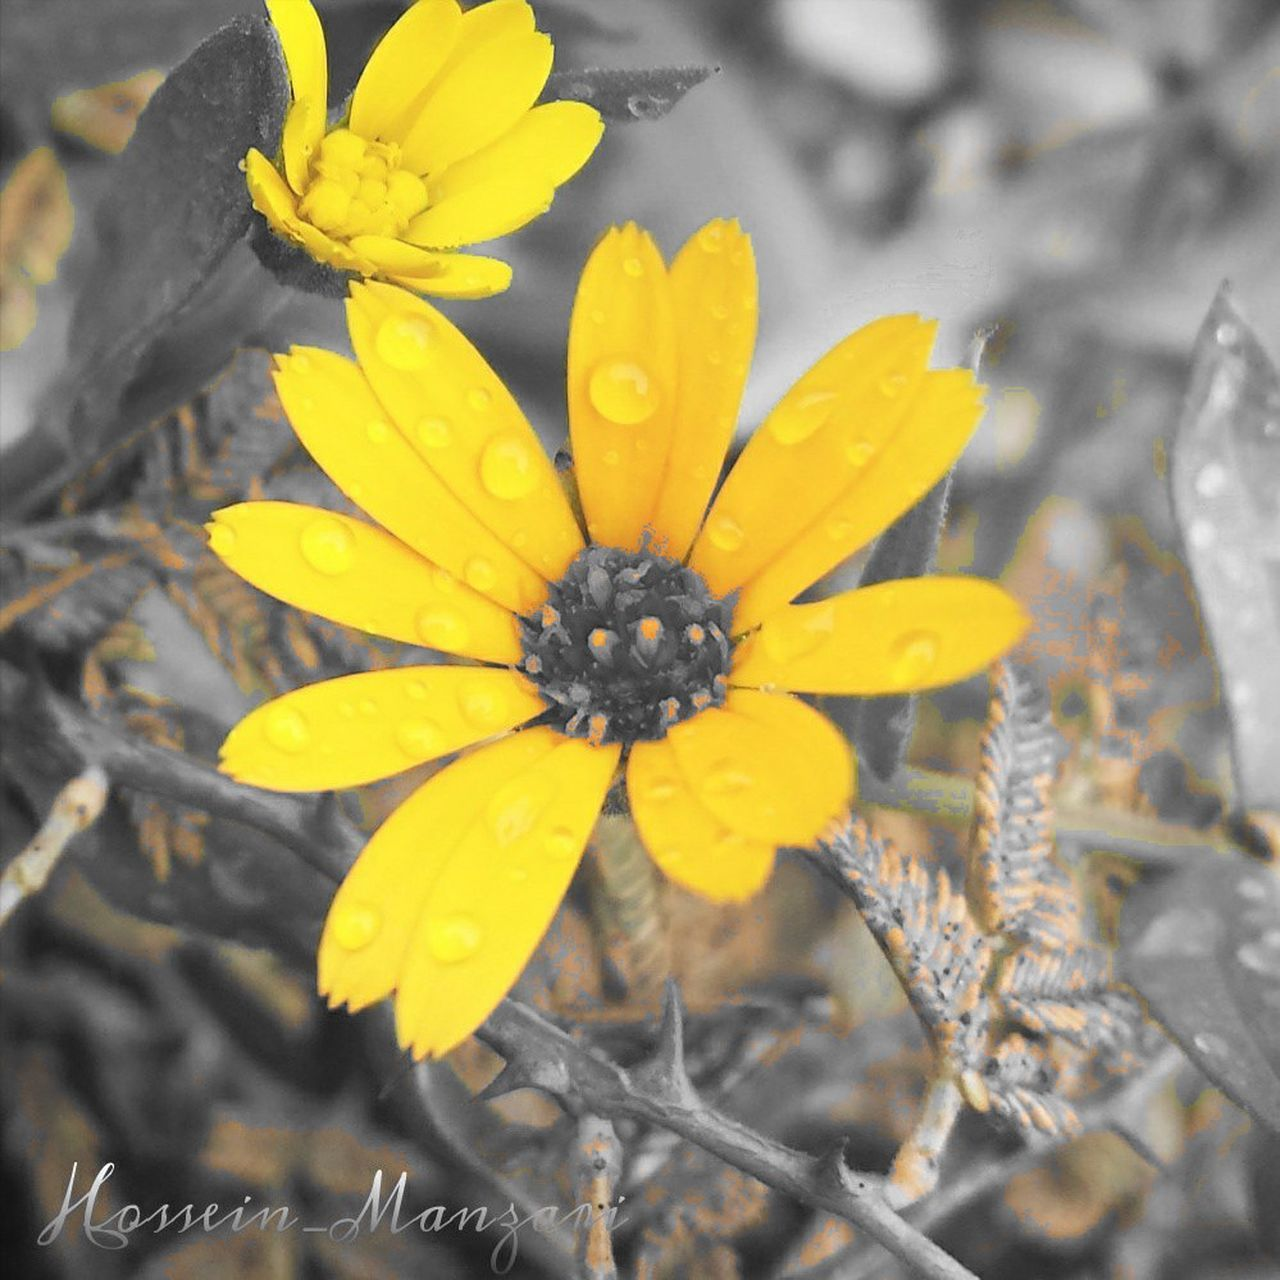 flower, petal, fragility, flower head, nature, yellow, freshness, beauty in nature, growth, blooming, close-up, day, outdoors, no people, plant